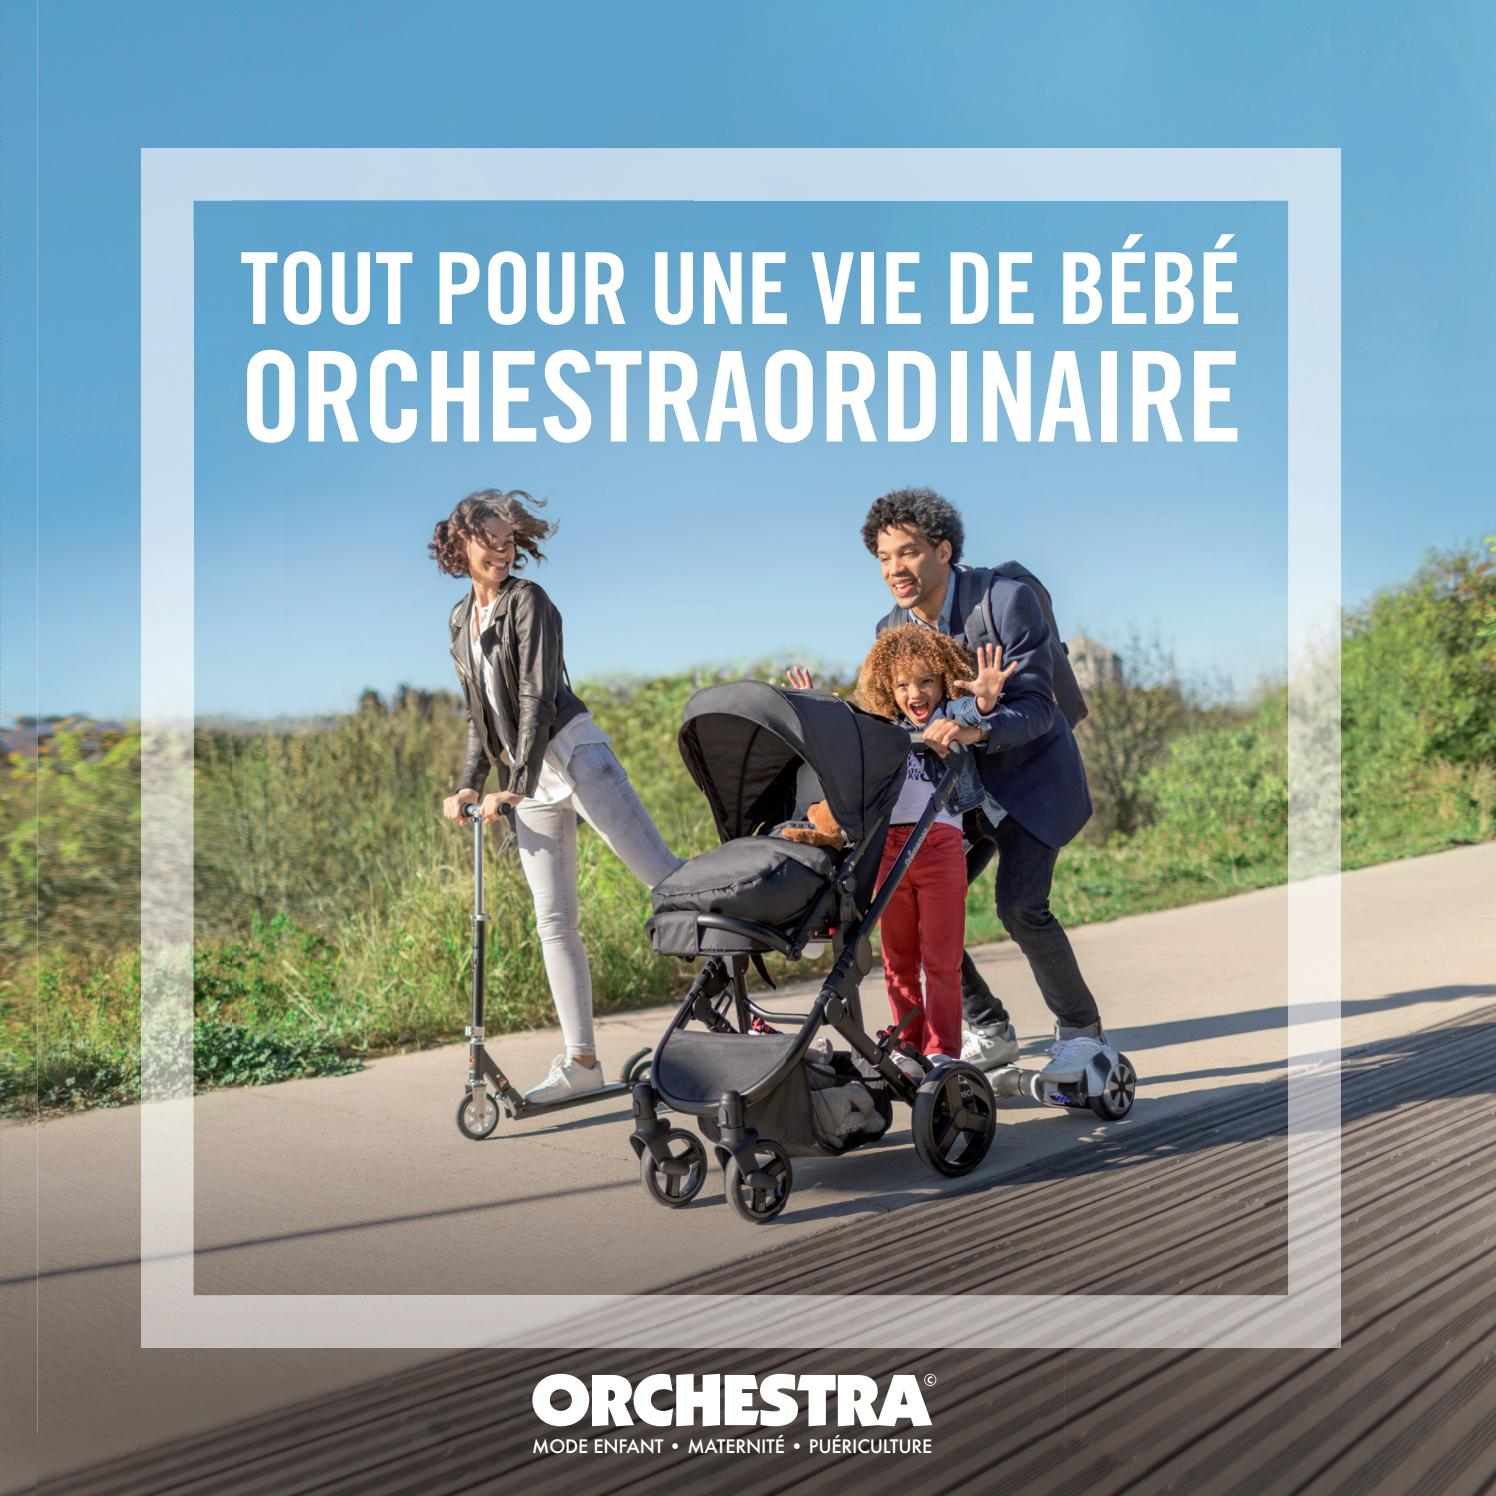 0d63d41fb6062 Catalogue Orchestra puériculture 2018 - FRANCE by Orchestra - issuu